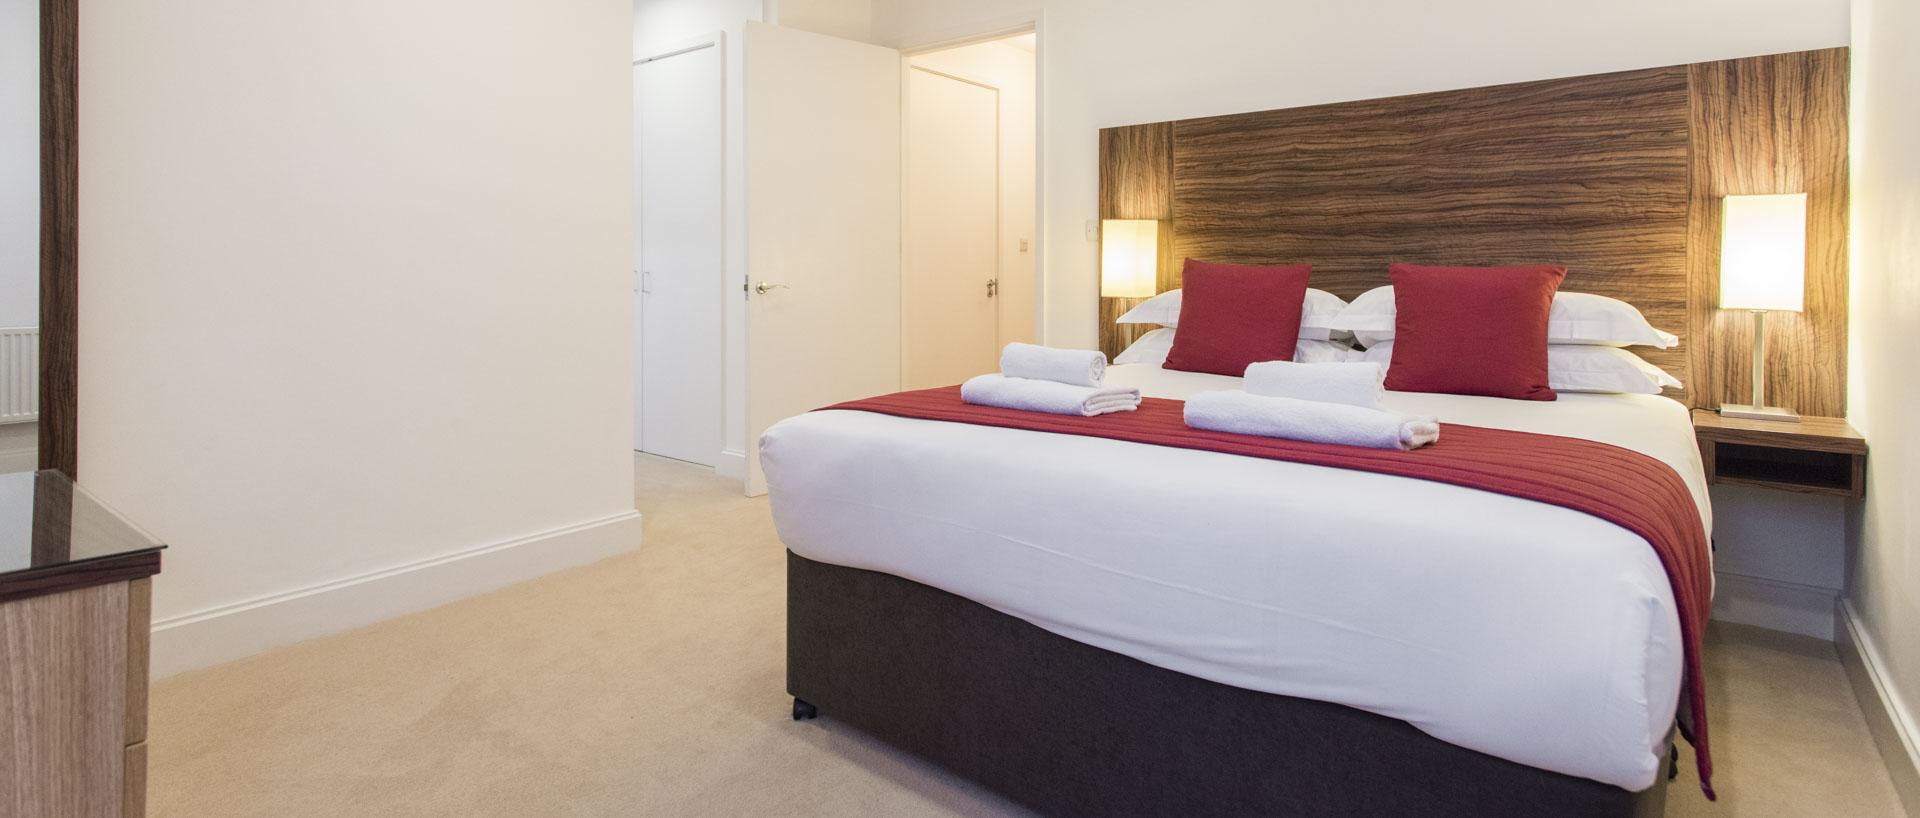 Modern double bedroom in PREMIER SUITES Bristol Cabot Circus